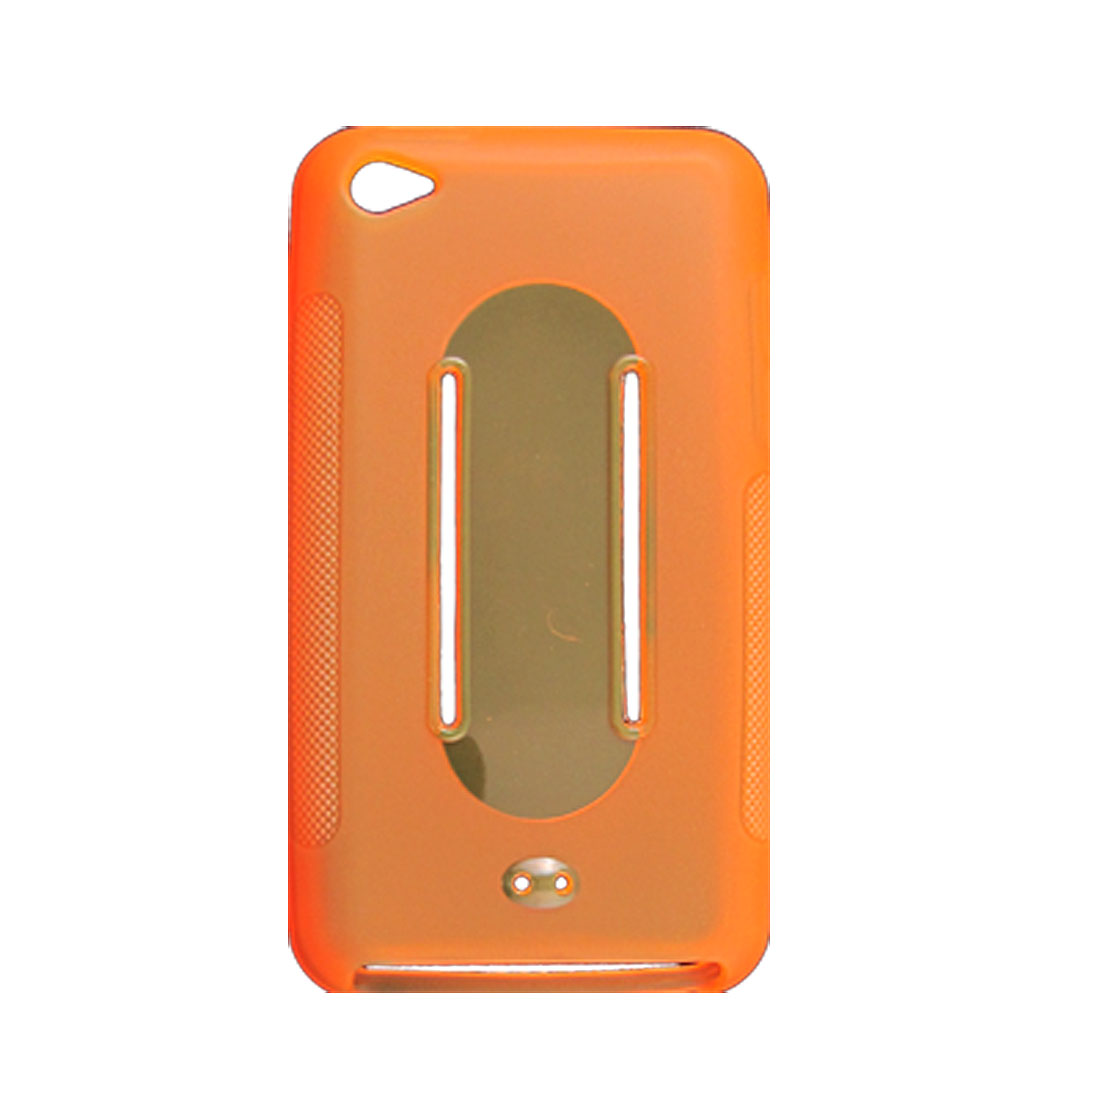 Antiskid Design Clear Orange Case for Apple iPod Touch 4G